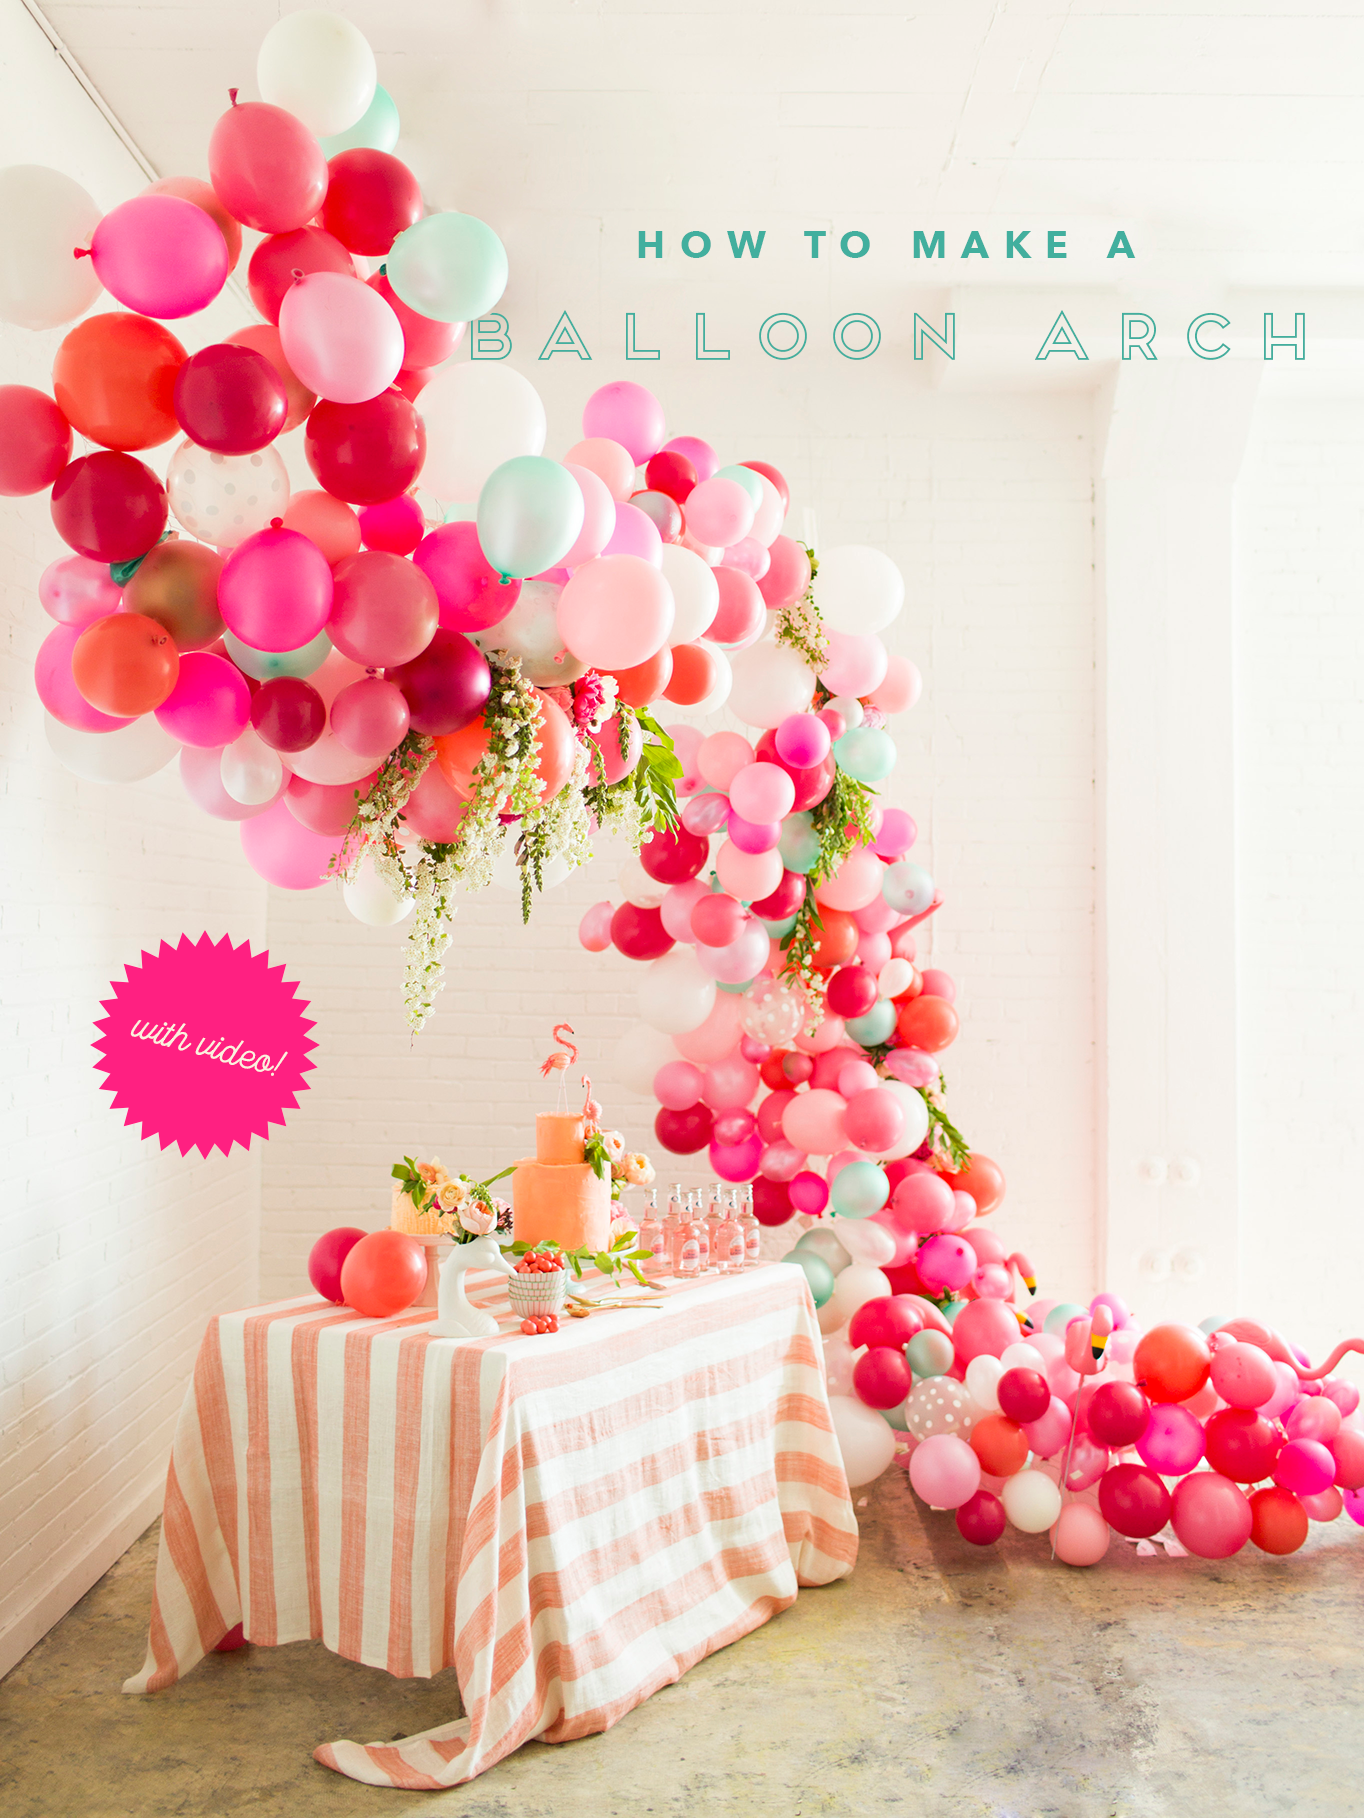 How to make a balloon arch video reader photos the for Arch balloons decoration